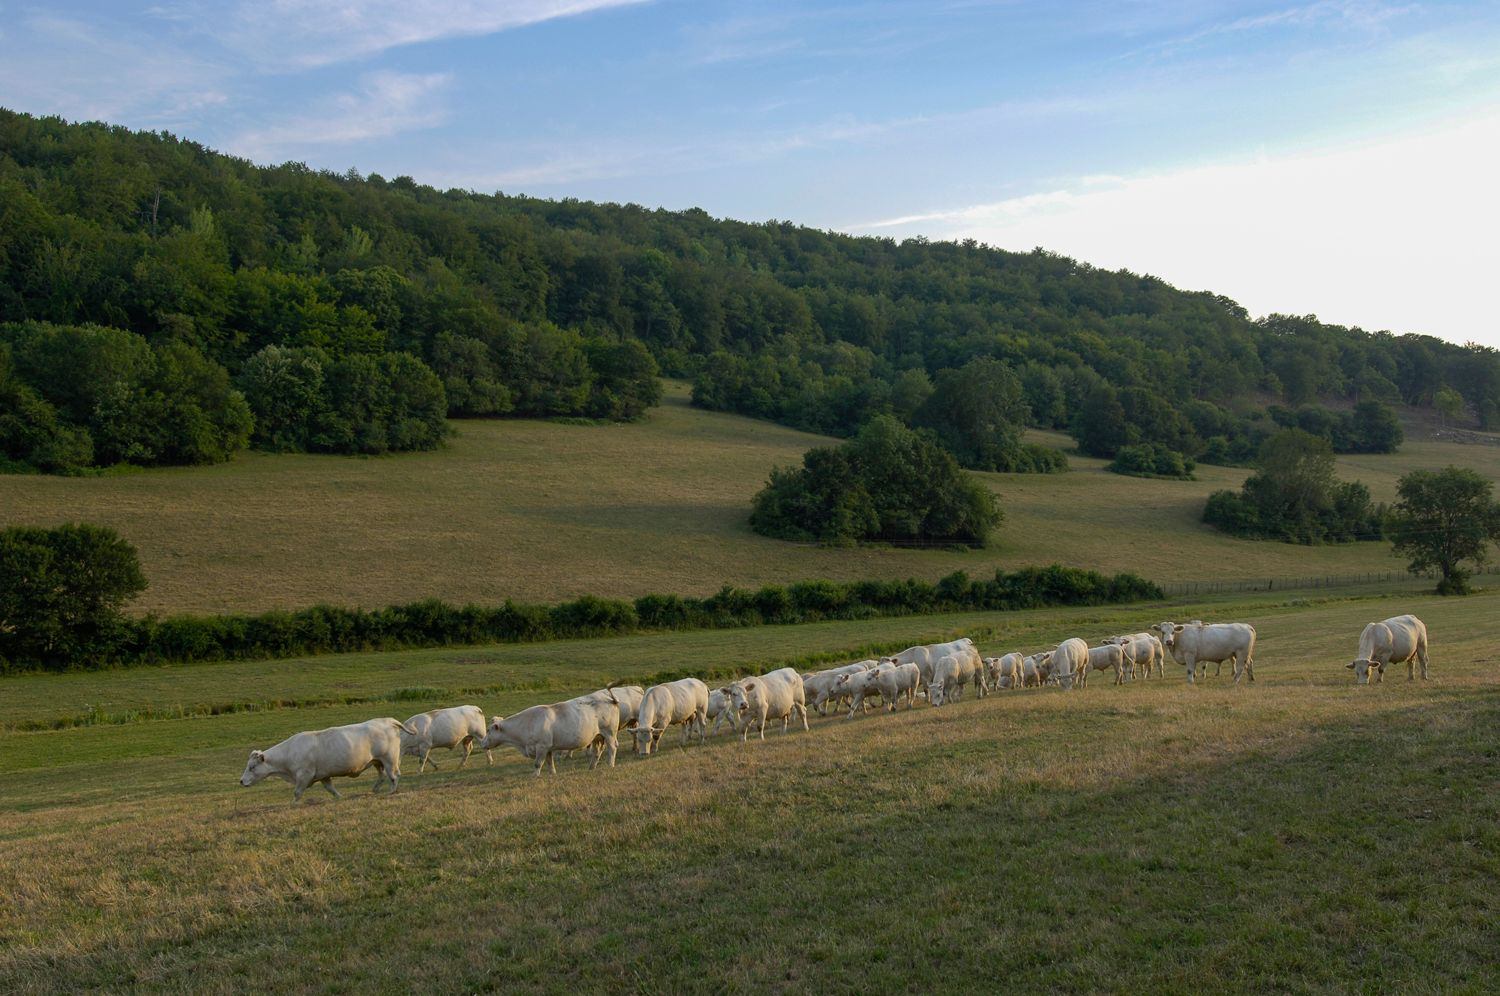 White Cows in Field, France